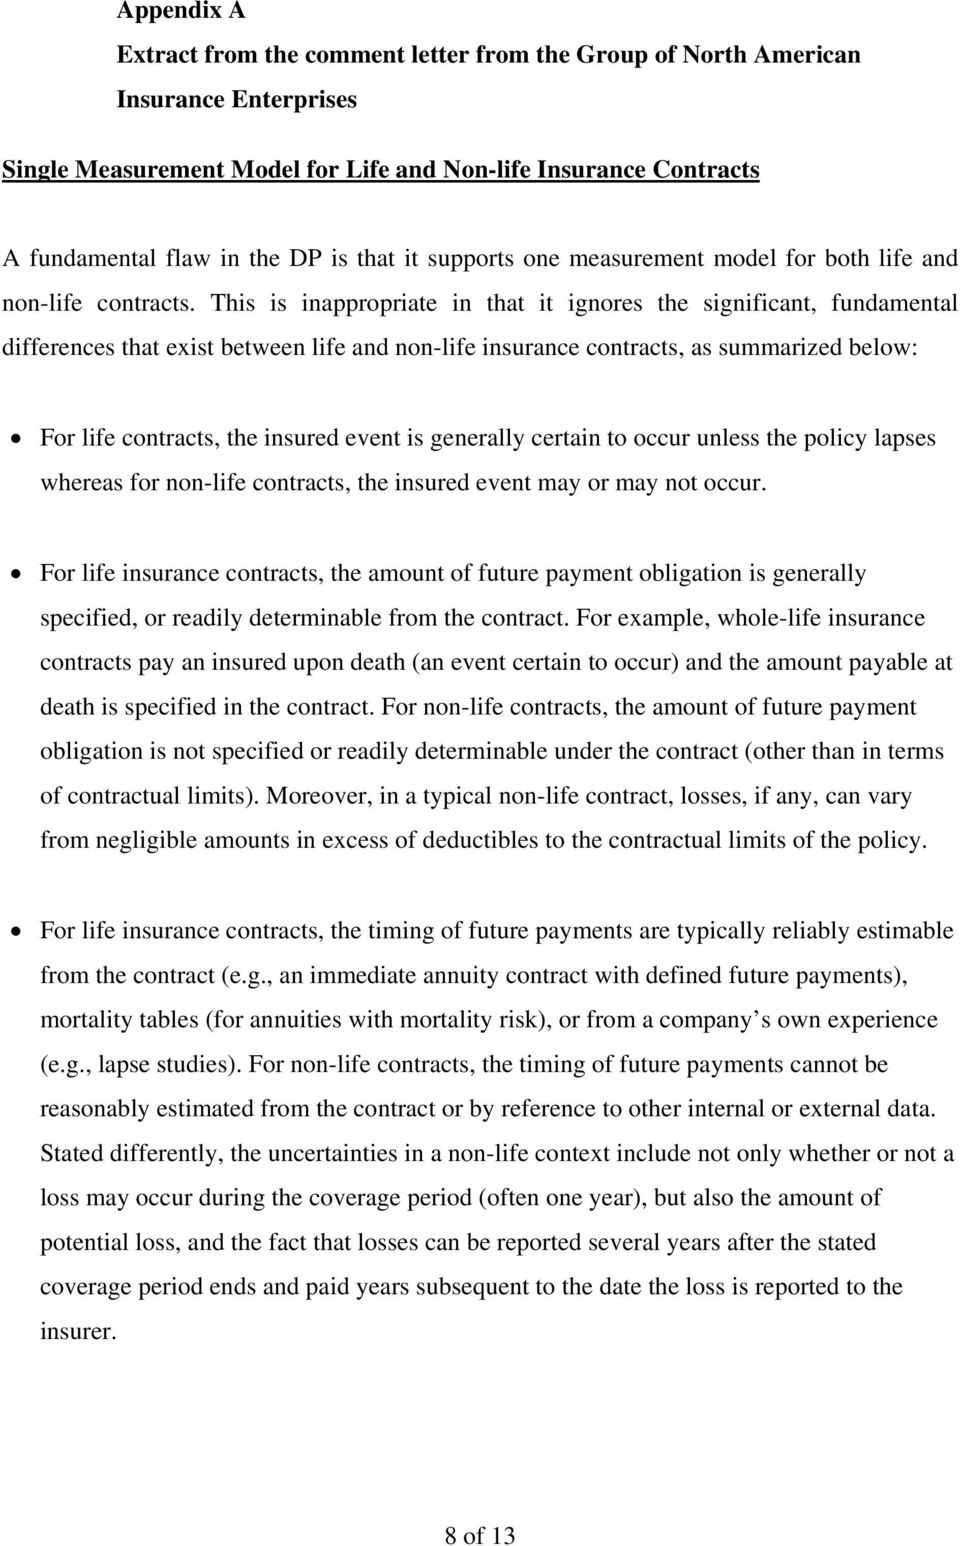 This is inappropriate in that it ignores the significant, fundamental differences that exist between life and non-life insurance contracts, as summarized below: For life contracts, the insured event